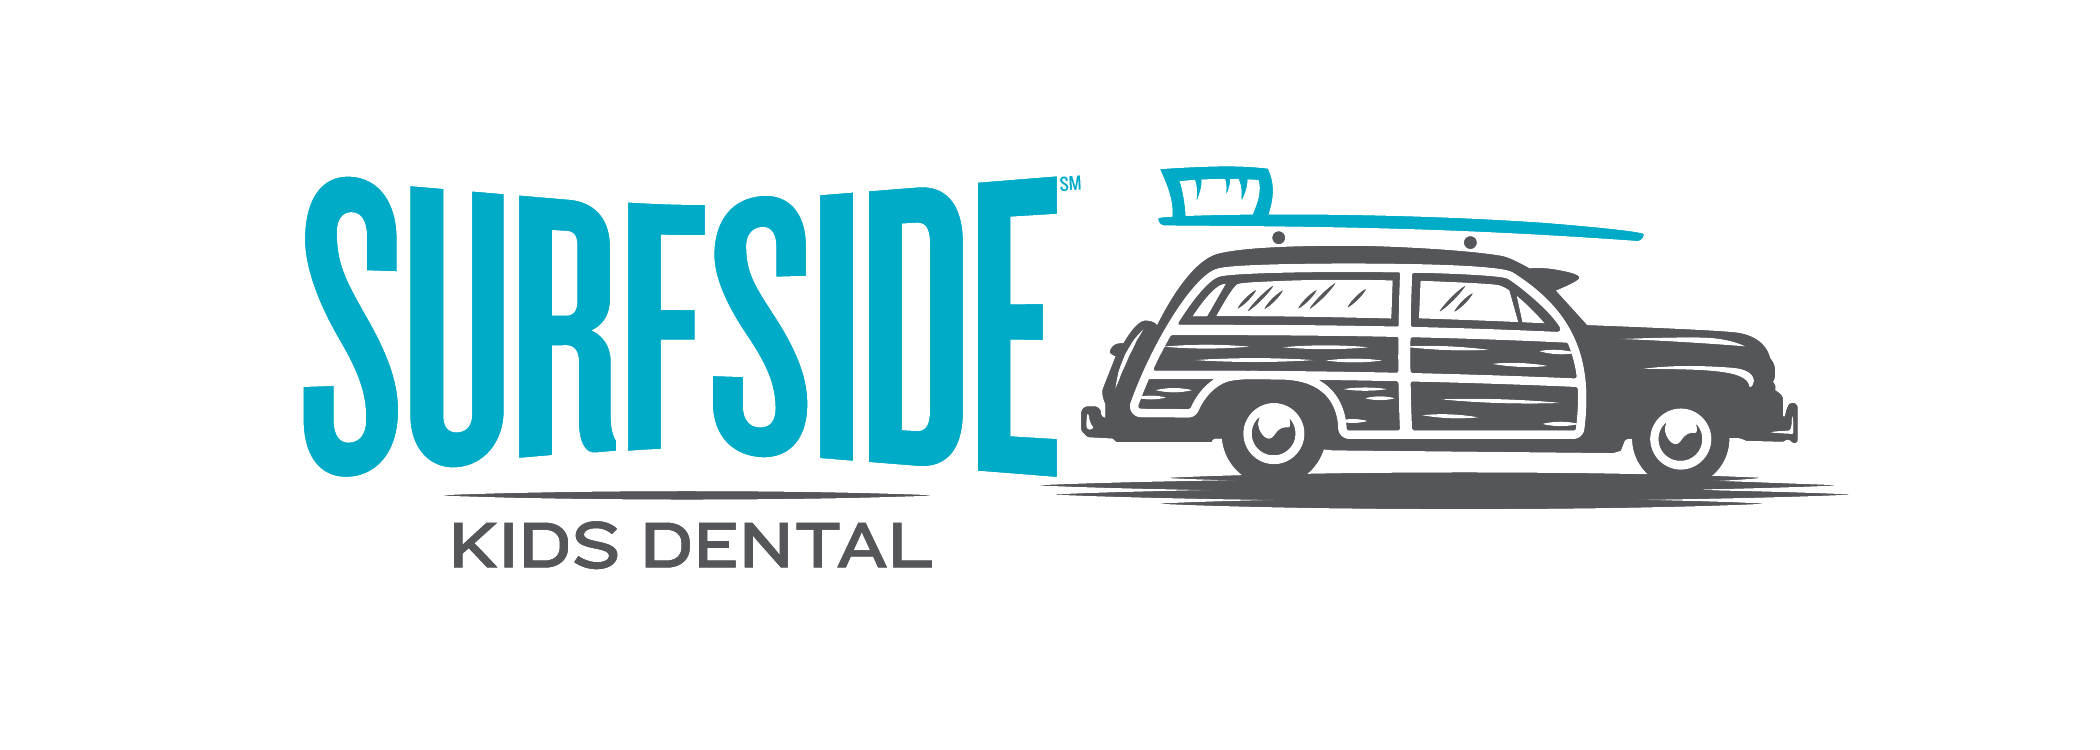 Best Kids Dentist Orthodontist in Northern California! Surf, Smile, Be Happy.